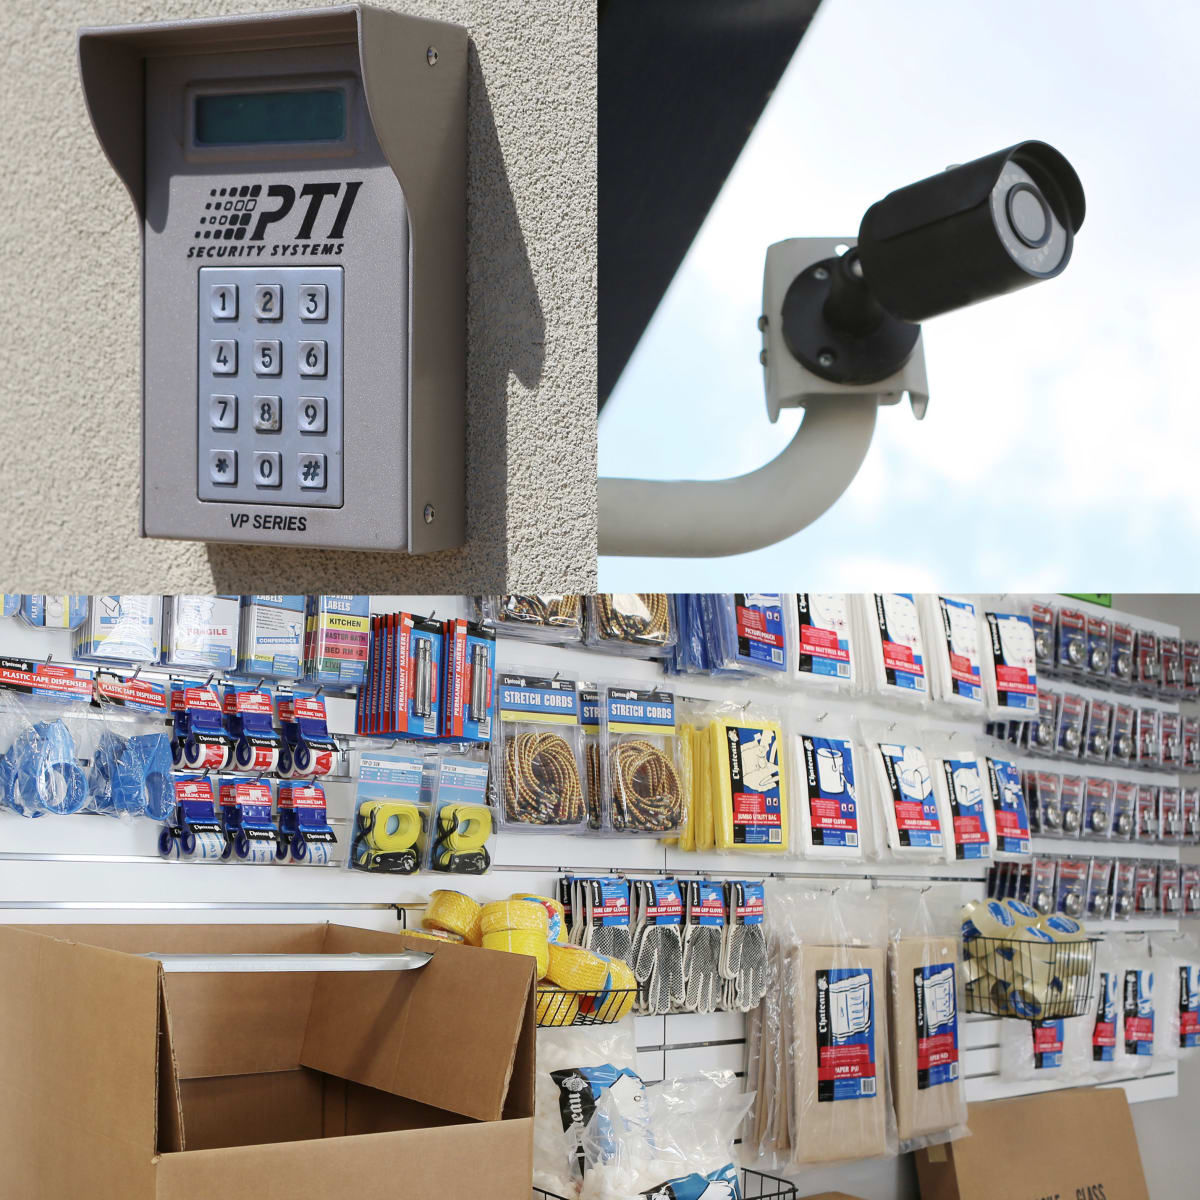 We provide 24 hour security monitoring and sell various moving and packing supplies at Midgard Self Storage in Melbourne, Florida